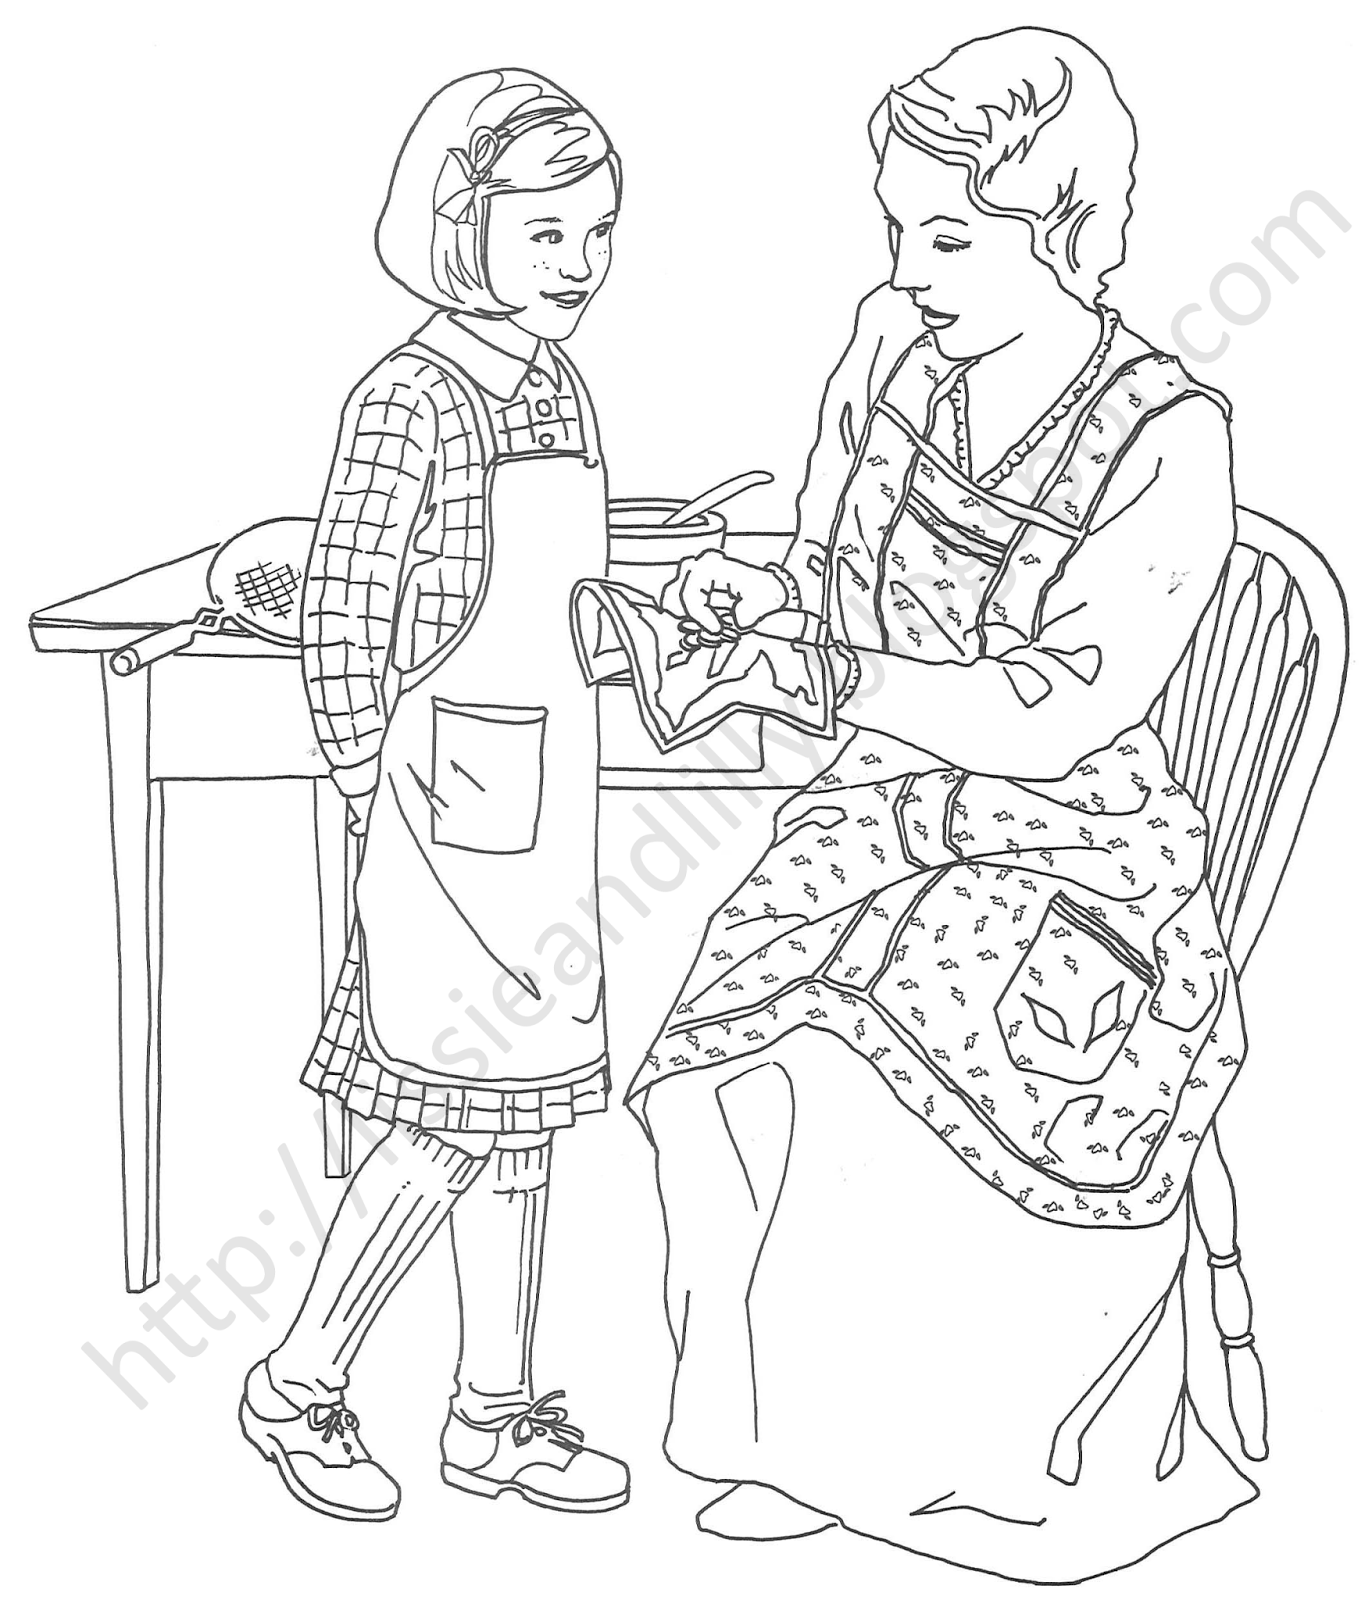 makayla coloring pages - photo#25